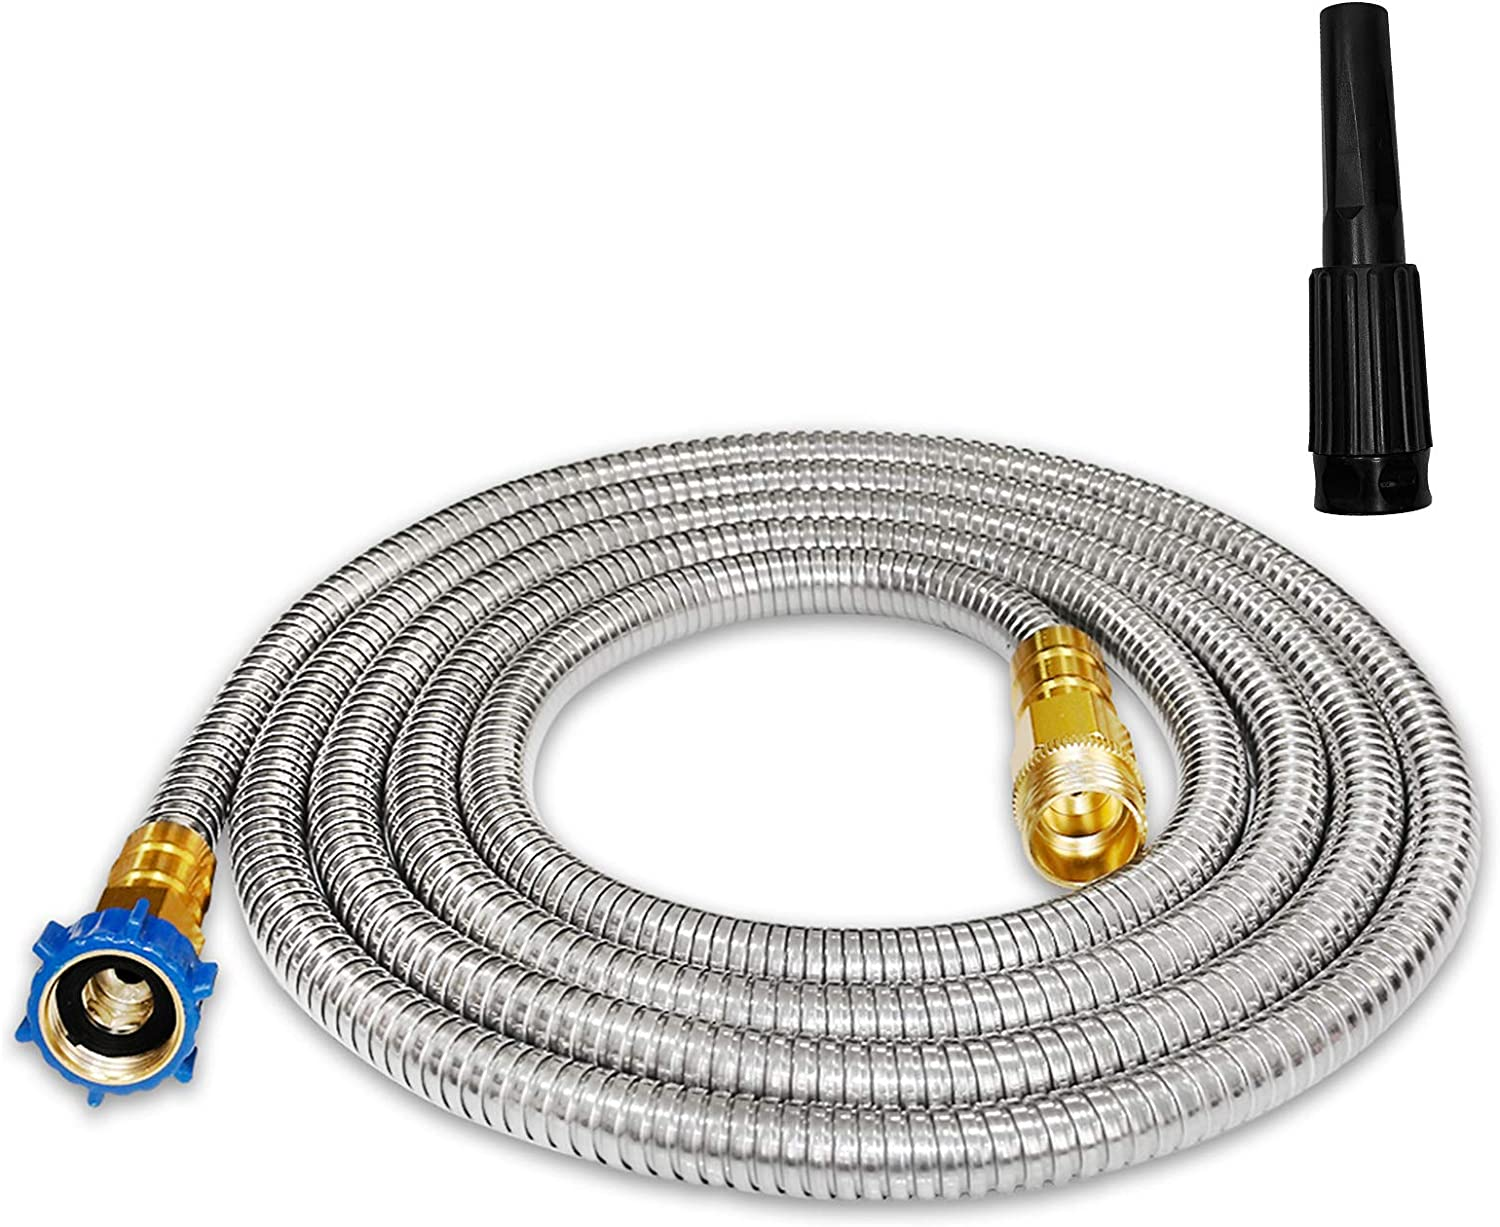 TUNHUI 304 Stainless Steel Garden Hose 10FT Outdoor Hose with Solid Metal Fittings Water Hose with Adjustable Nozzle Flexible Durable Kink-Free and Easy to Store